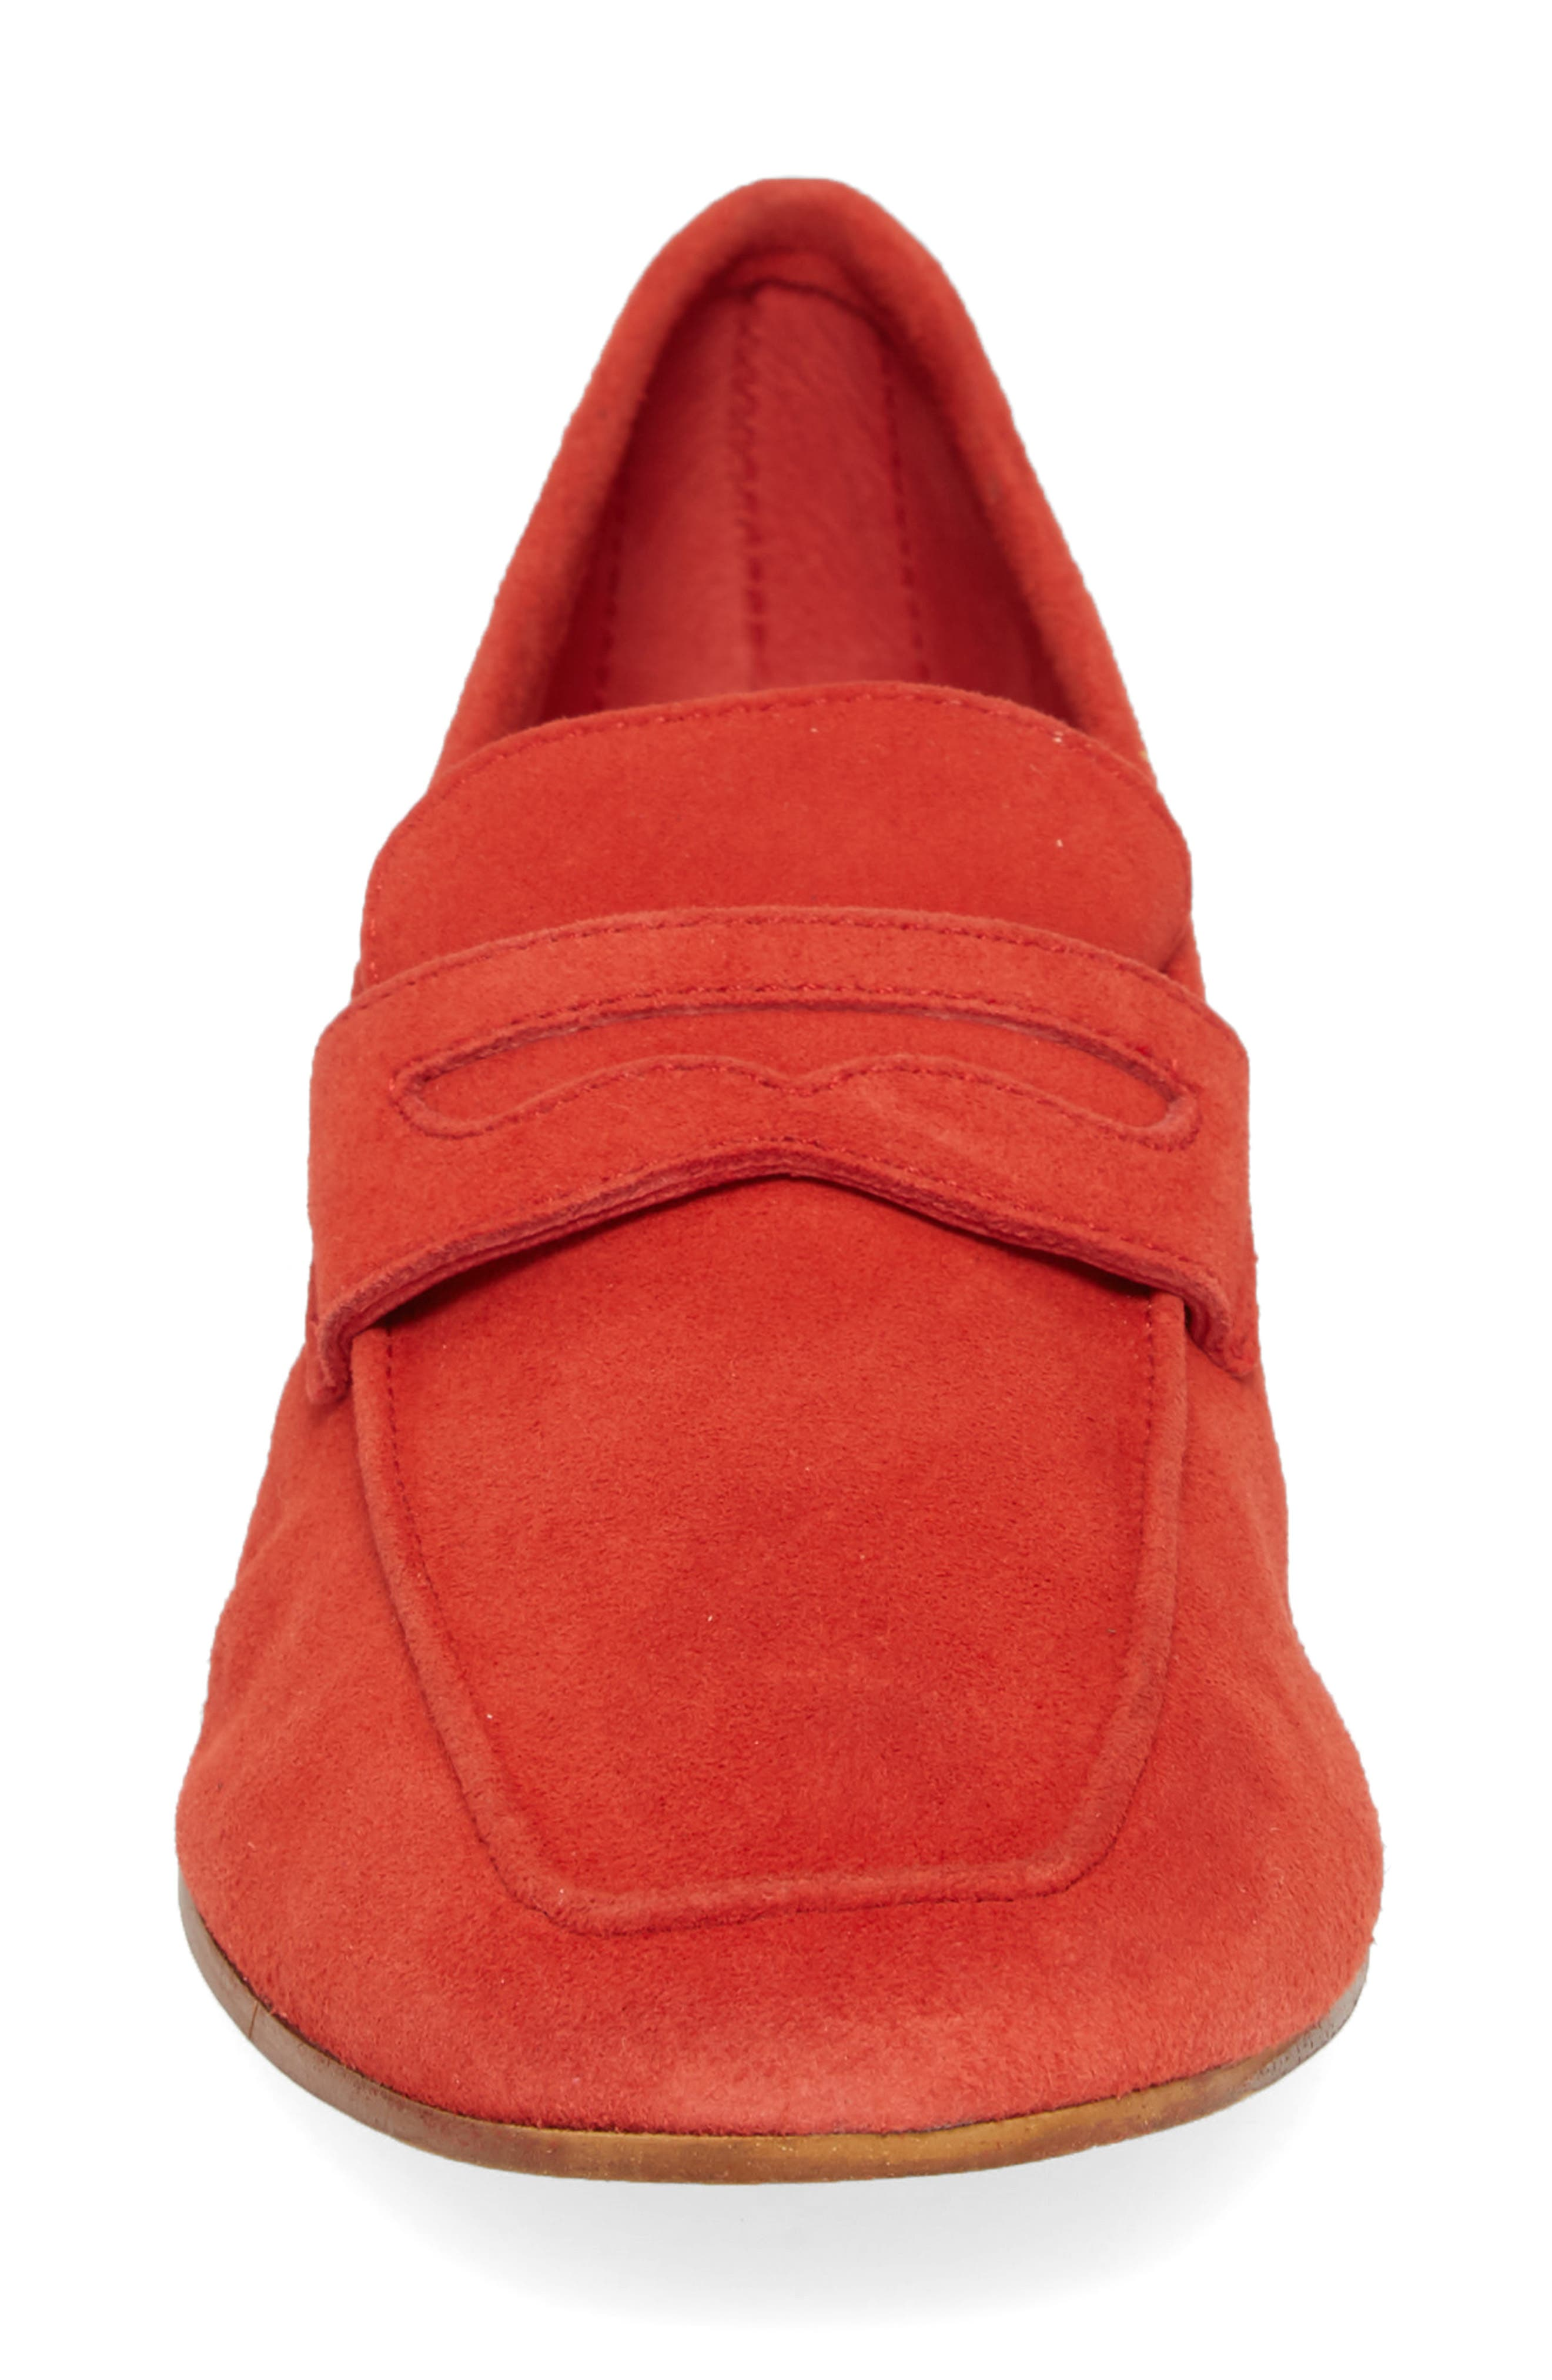 Dean Apron Toe Penny Loafer,                             Alternate thumbnail 4, color,                             Red Suede